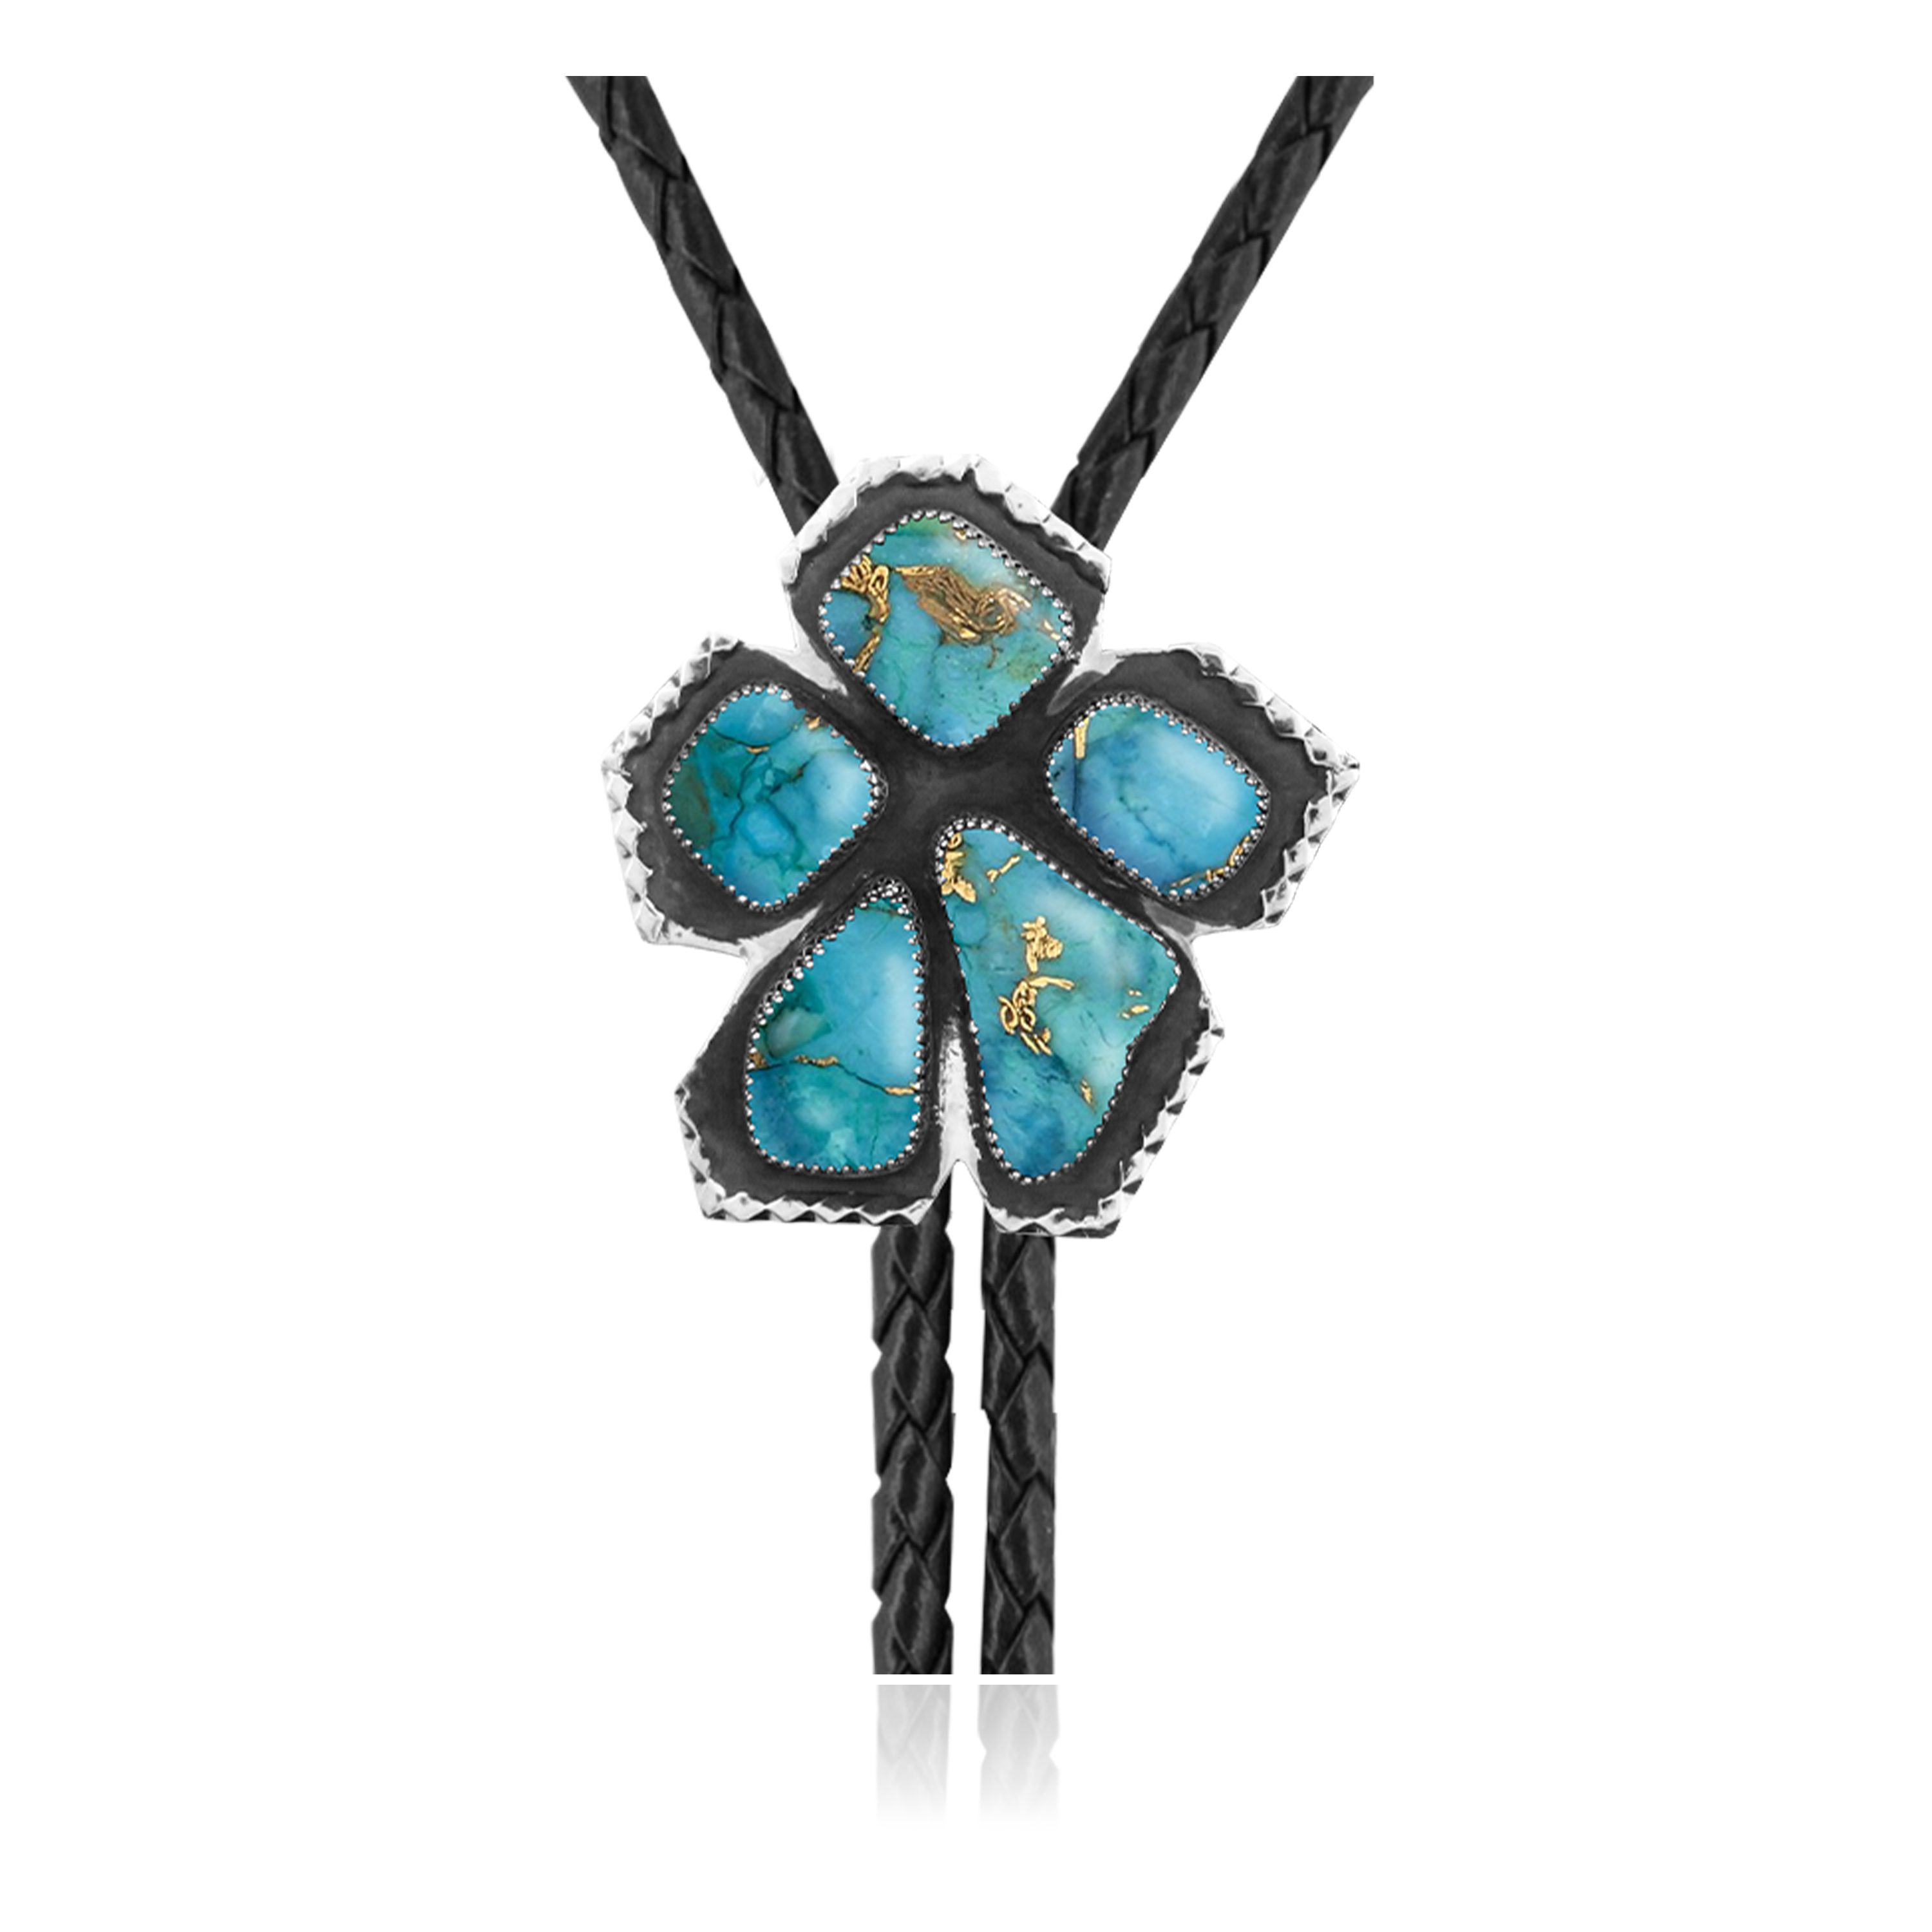 Flower .925 Sterling Silver Certified Authentic Handmade Navajo Native American Natural Turquoise Bolo Tie 34356